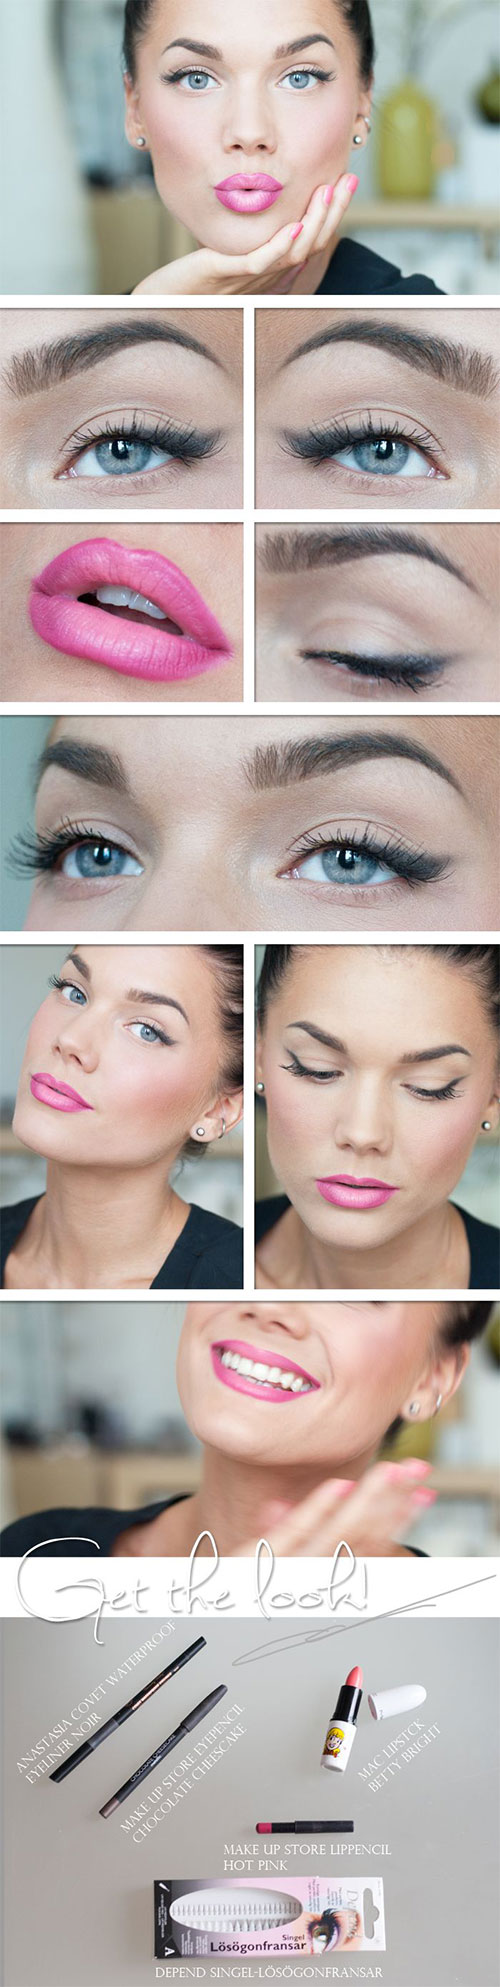 12-Easy-Summer-Eye-Make-Up-Tutorials-For-Beginners-Learners-2015-8